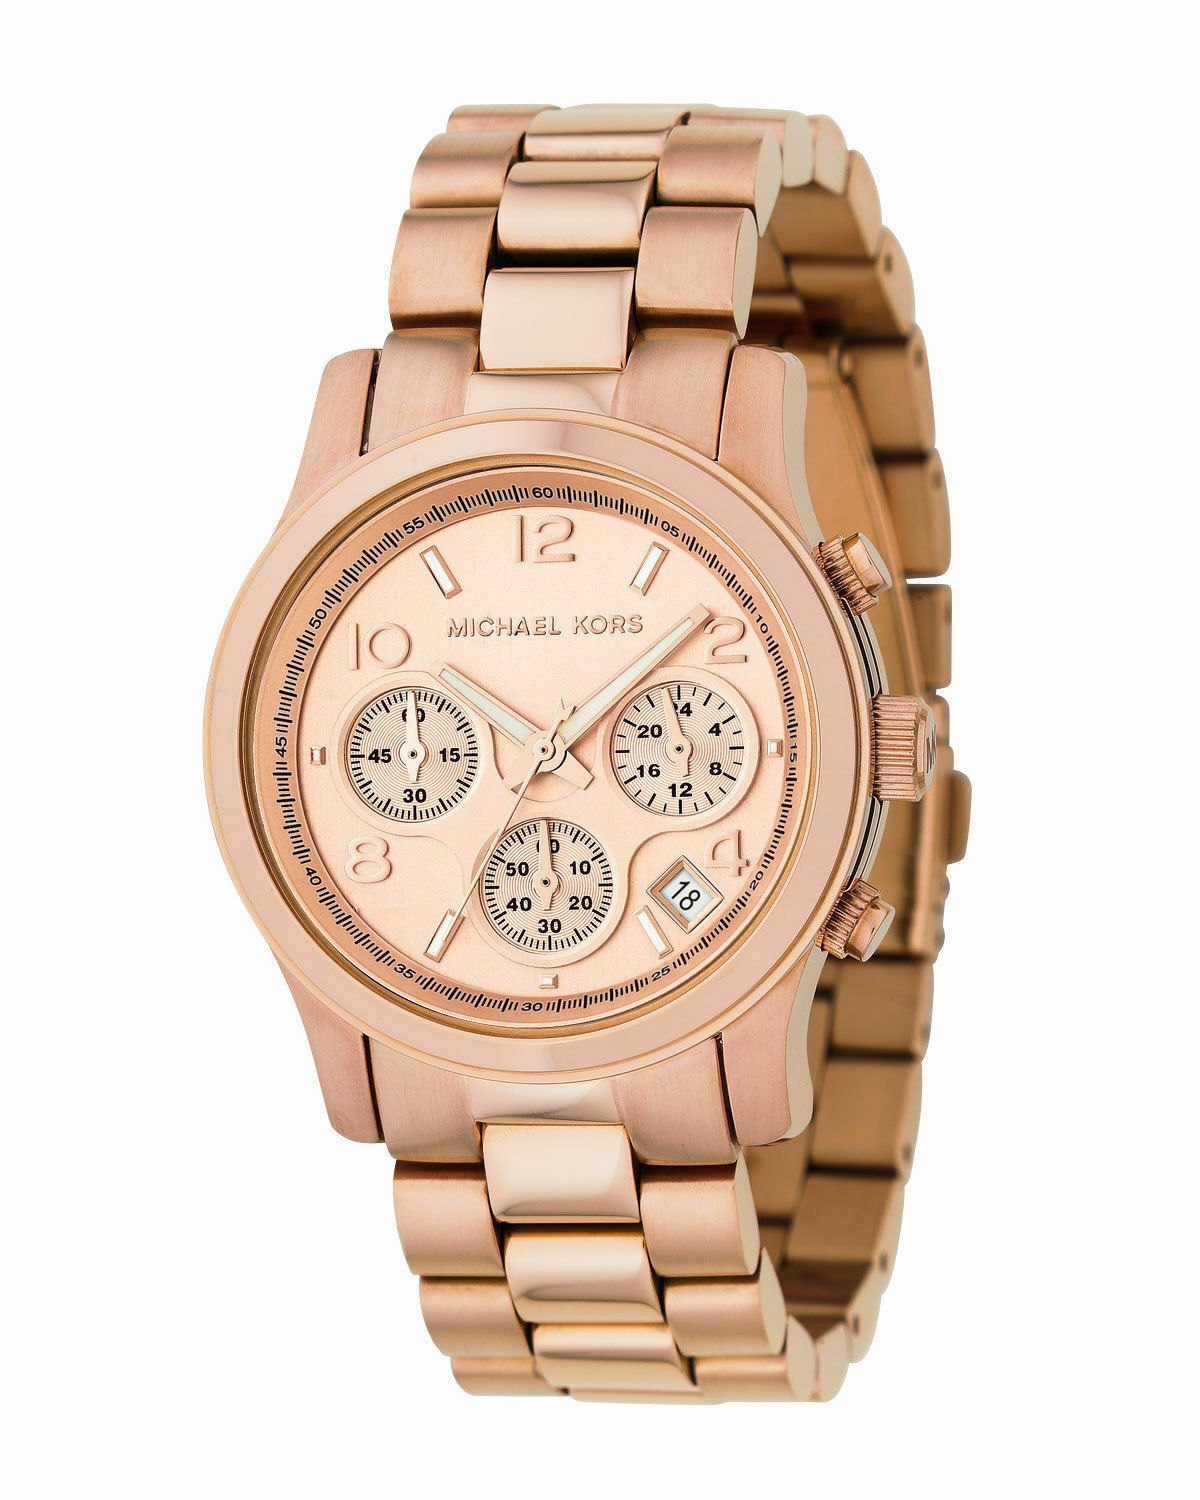 1fc0e7e58069 Michael Kors MK5128 Wrist Watch for Women for sale online